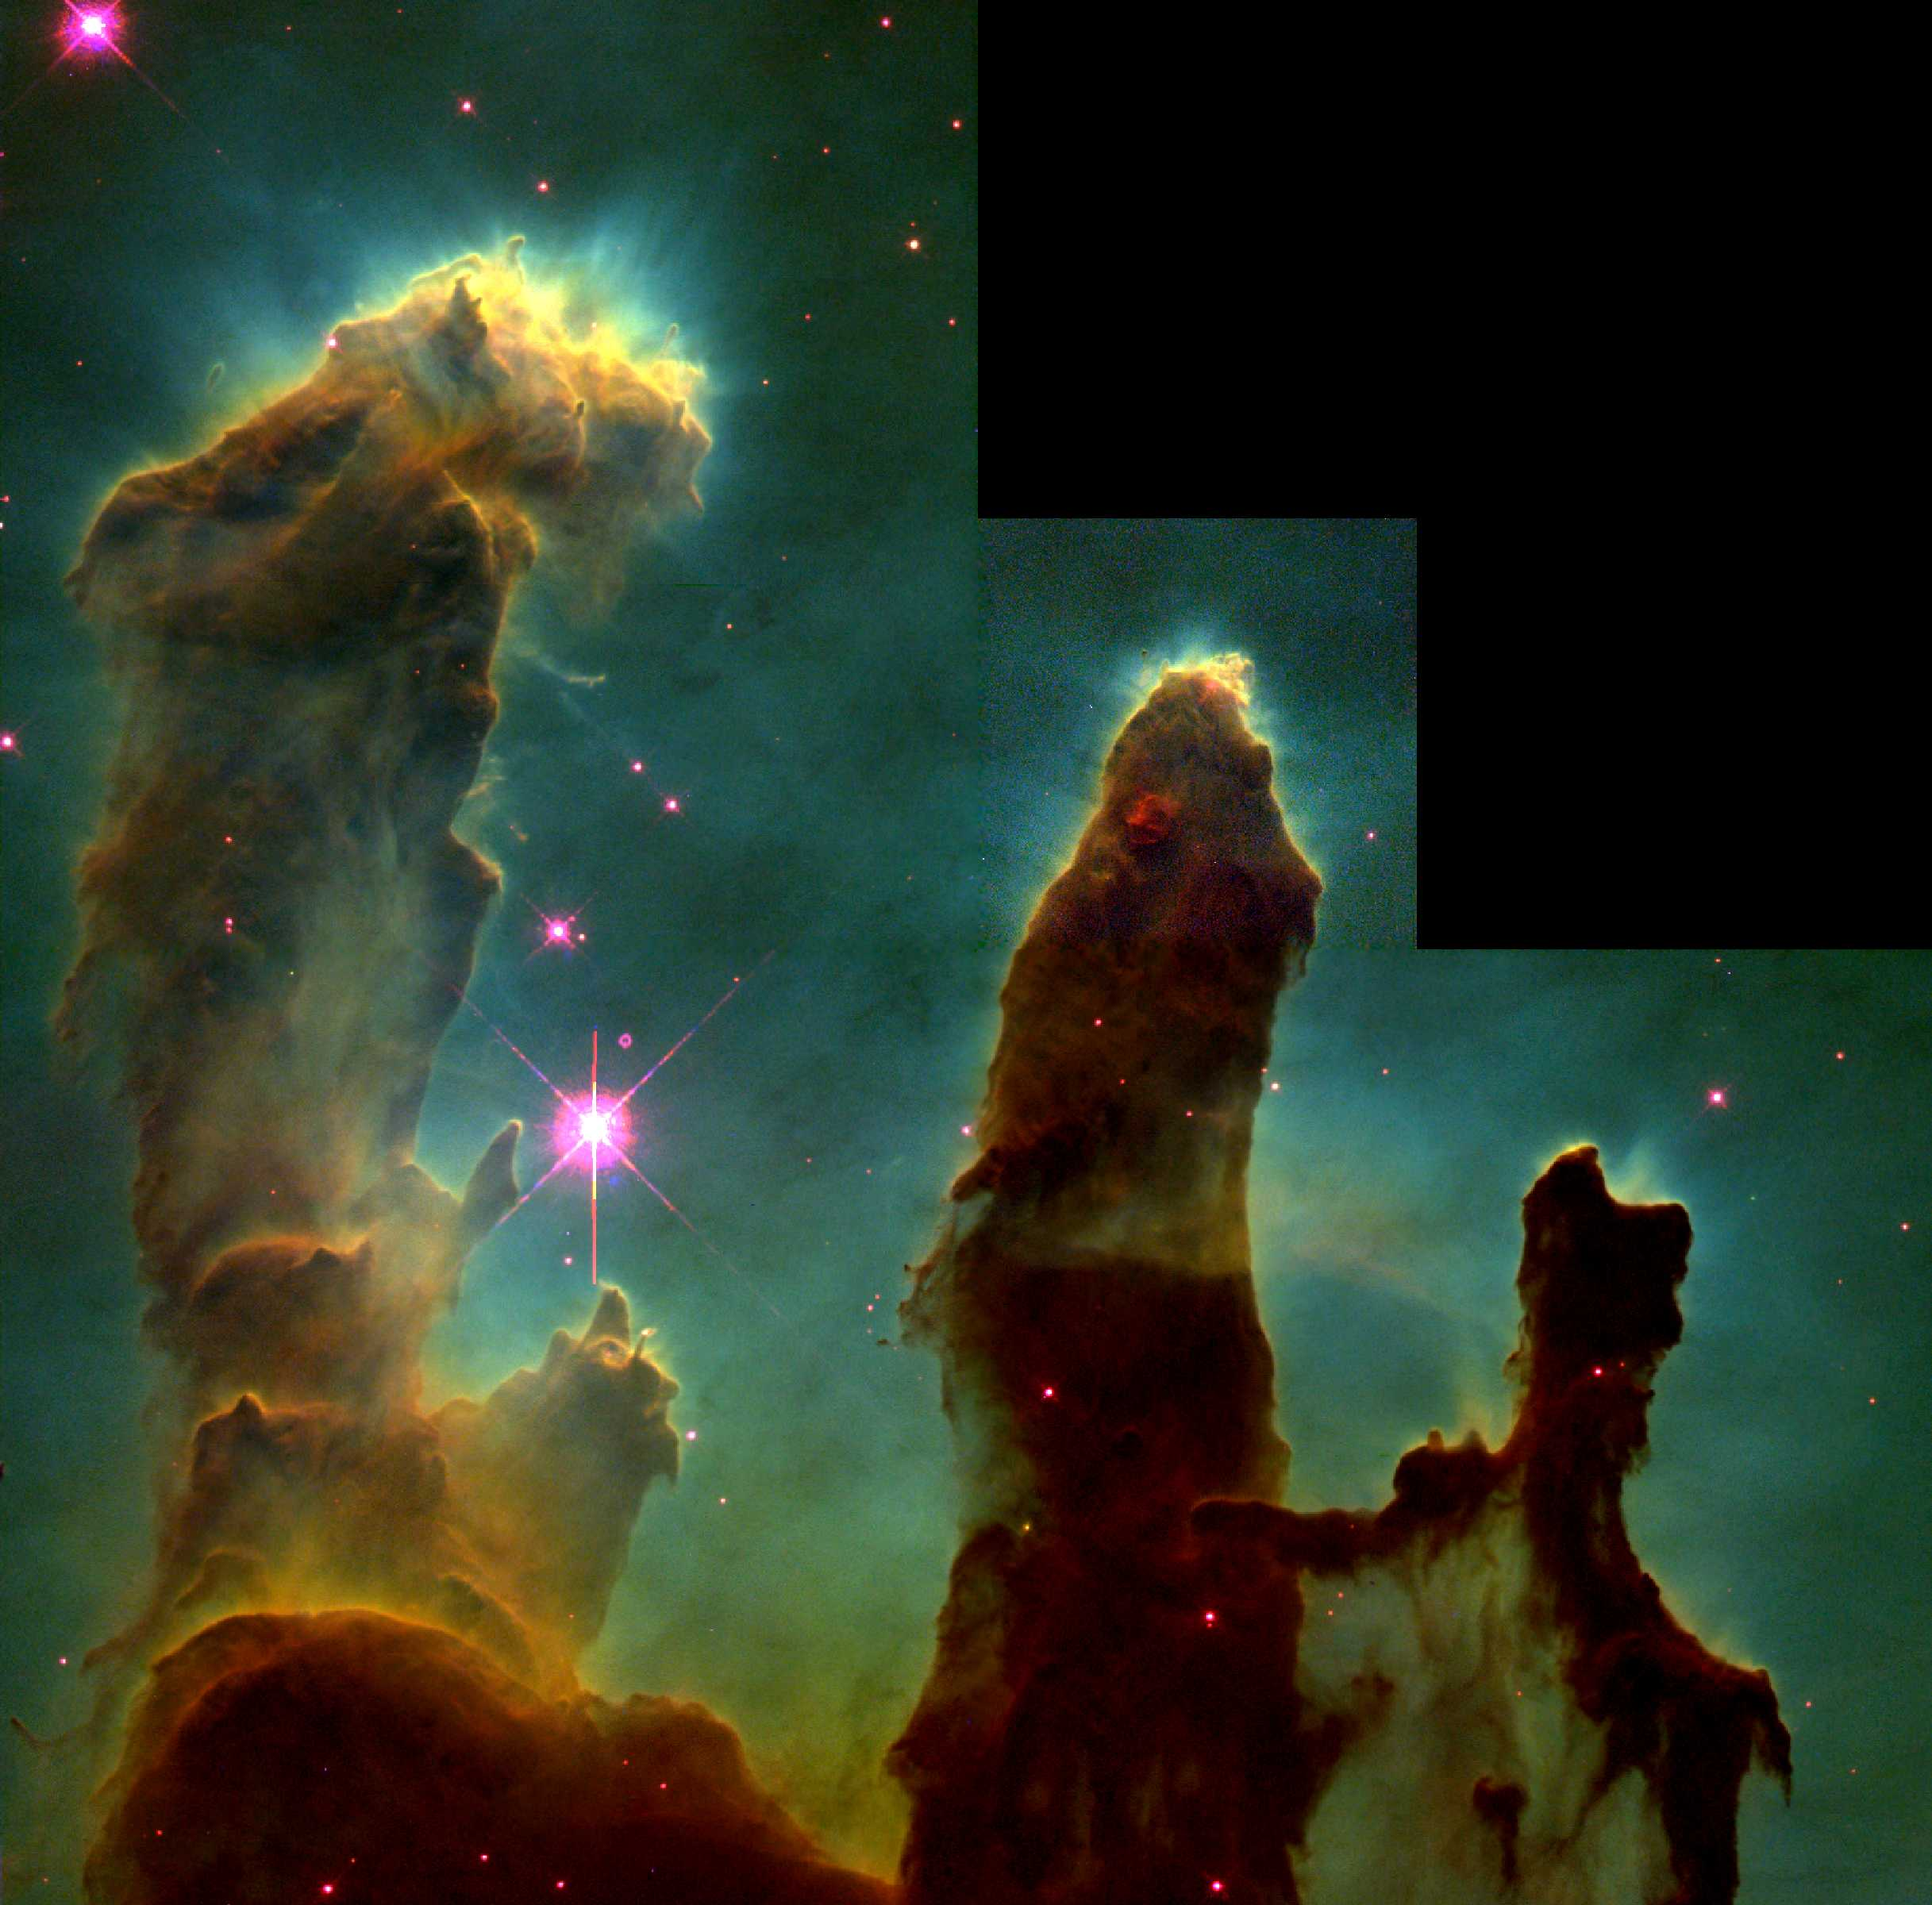 Eagle Nebula's pillars of creation